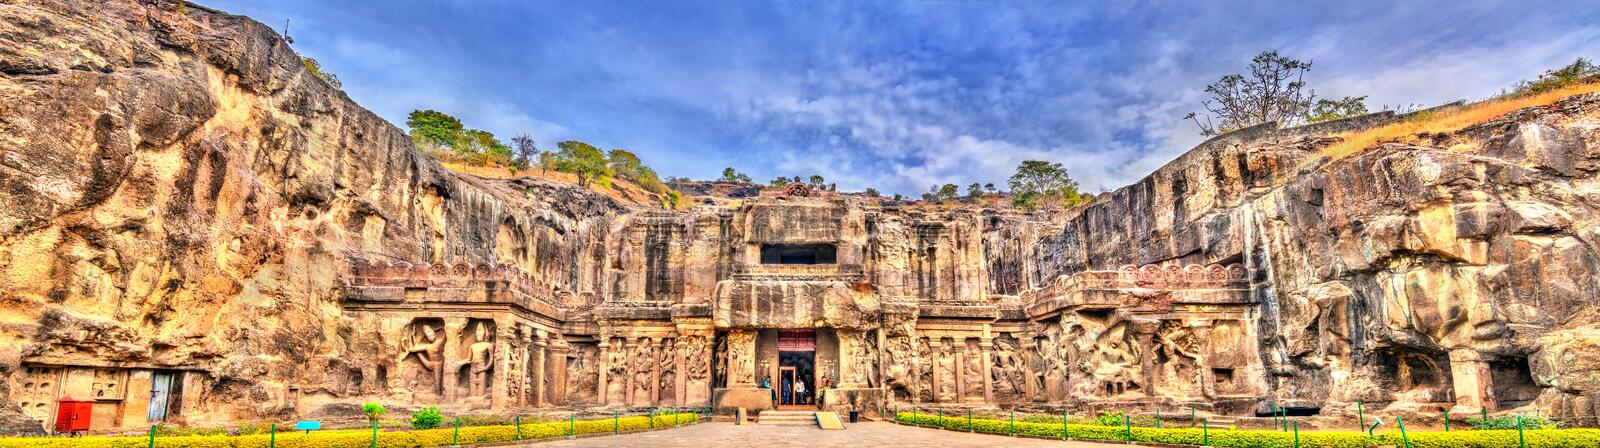 The Kailasa temple, the biggest temple at Ellora Caves. UNESCO world heritage site in Maharashtra, India. The Kailasa temple, the largest temple at Ellora Caves stock image